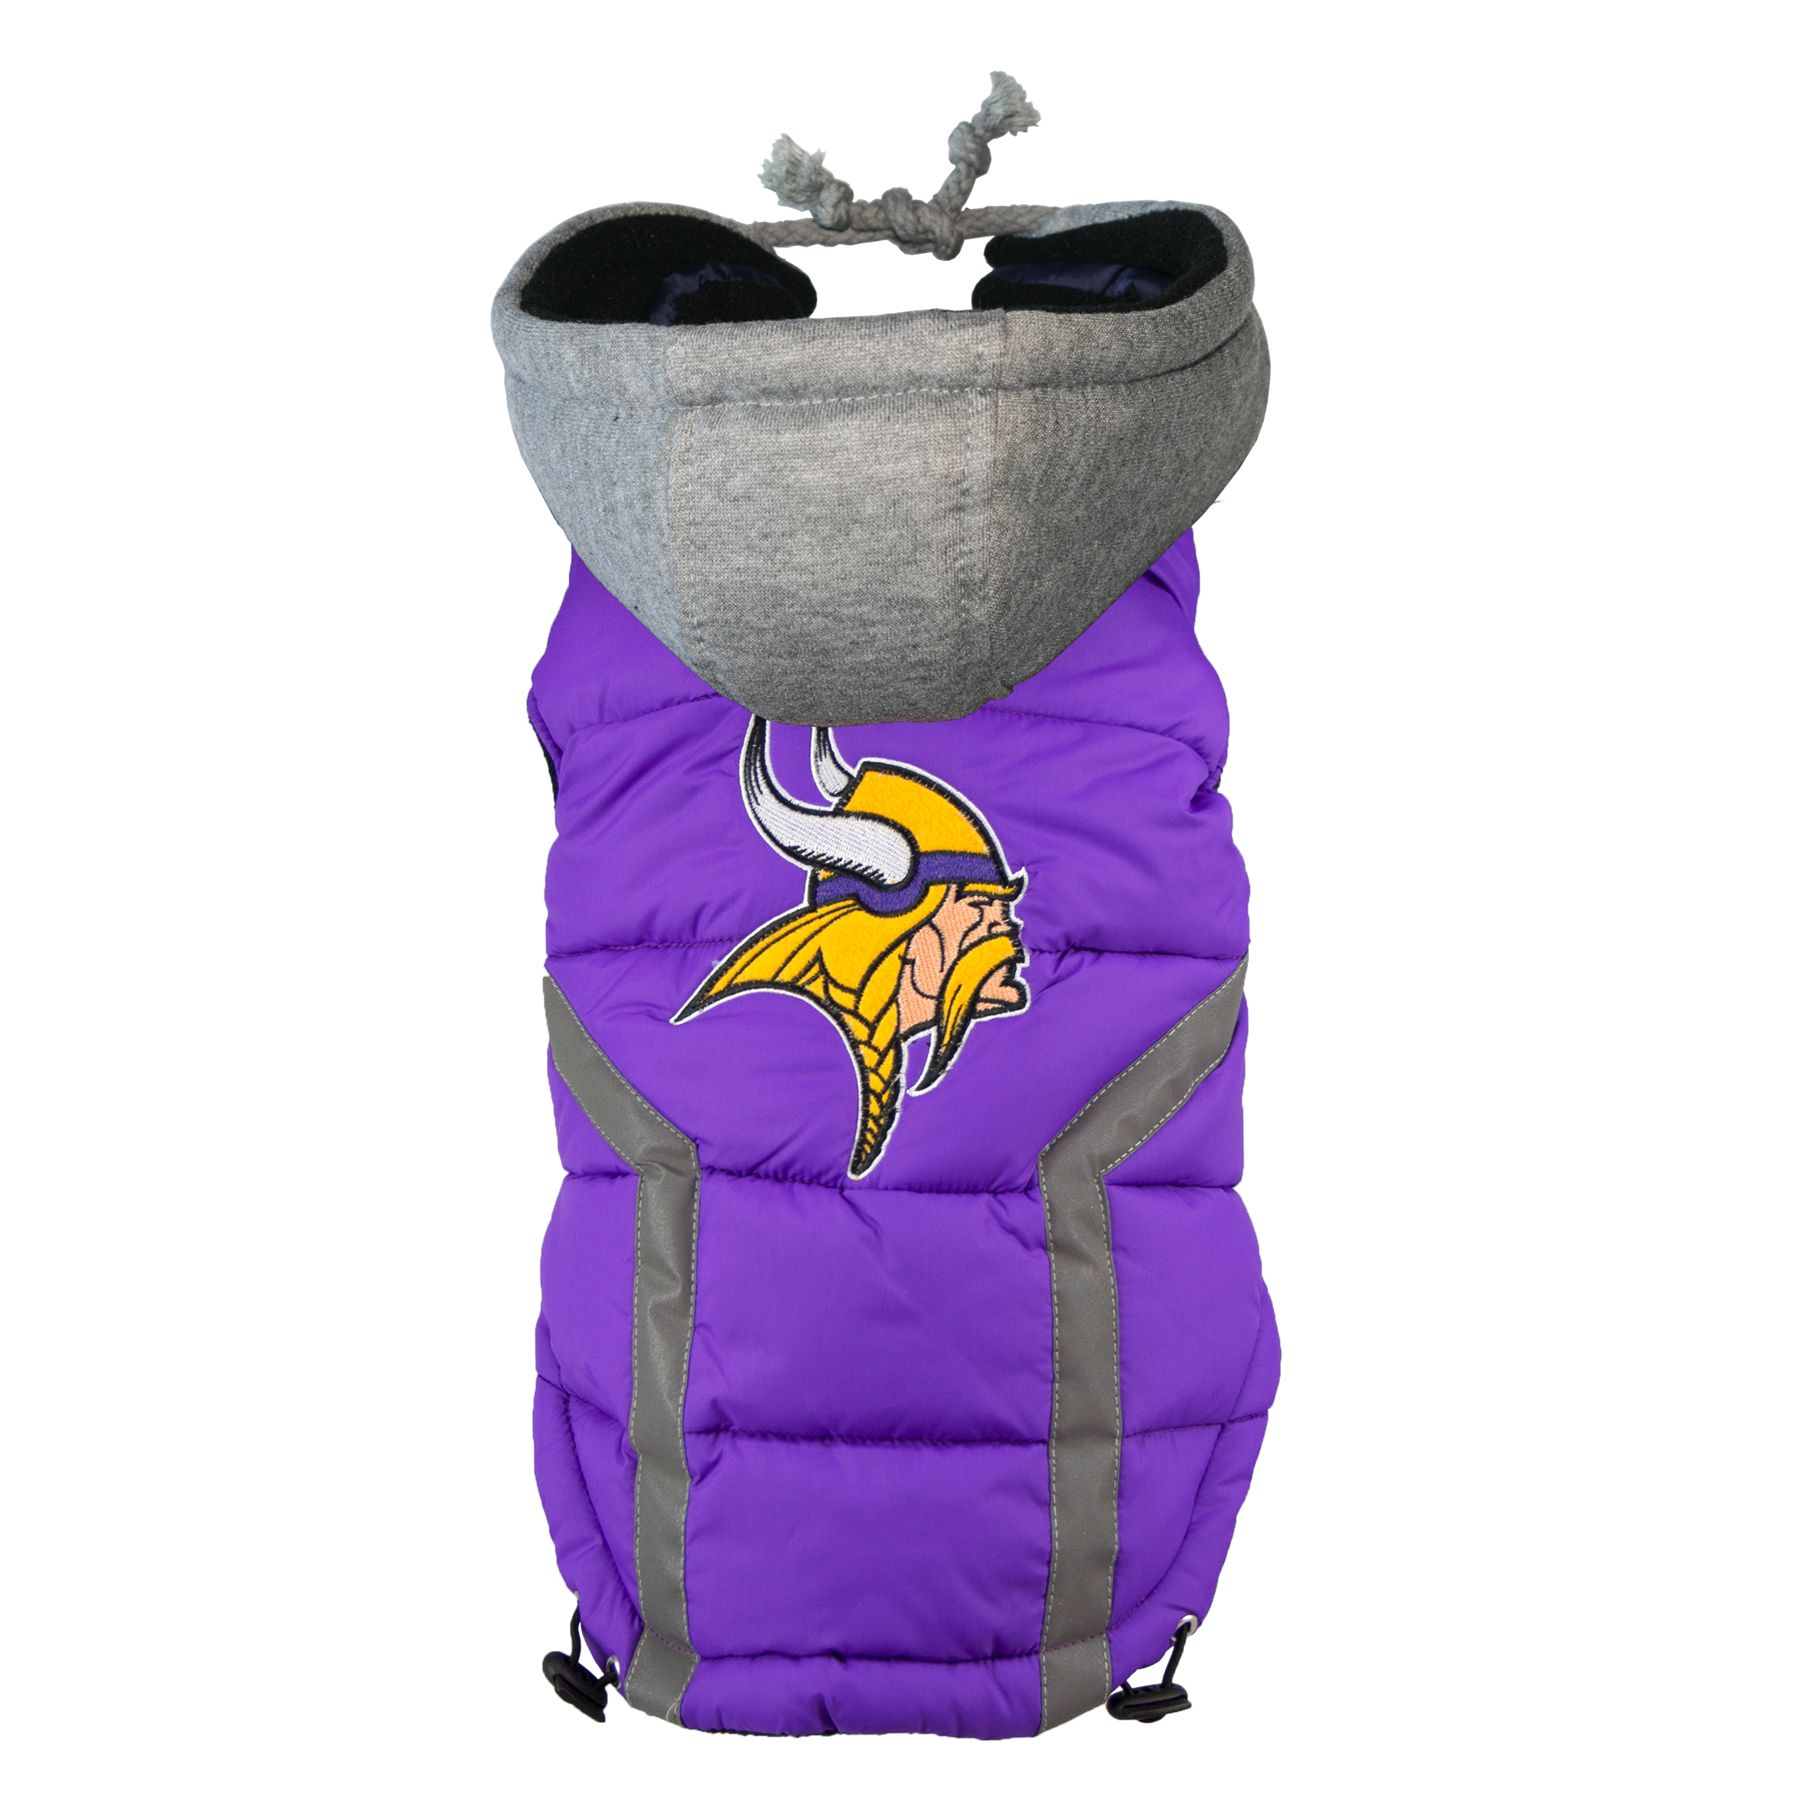 Minnesota Vikings NFL Puffer Vest size: 2X Large, Hip Doggie photo